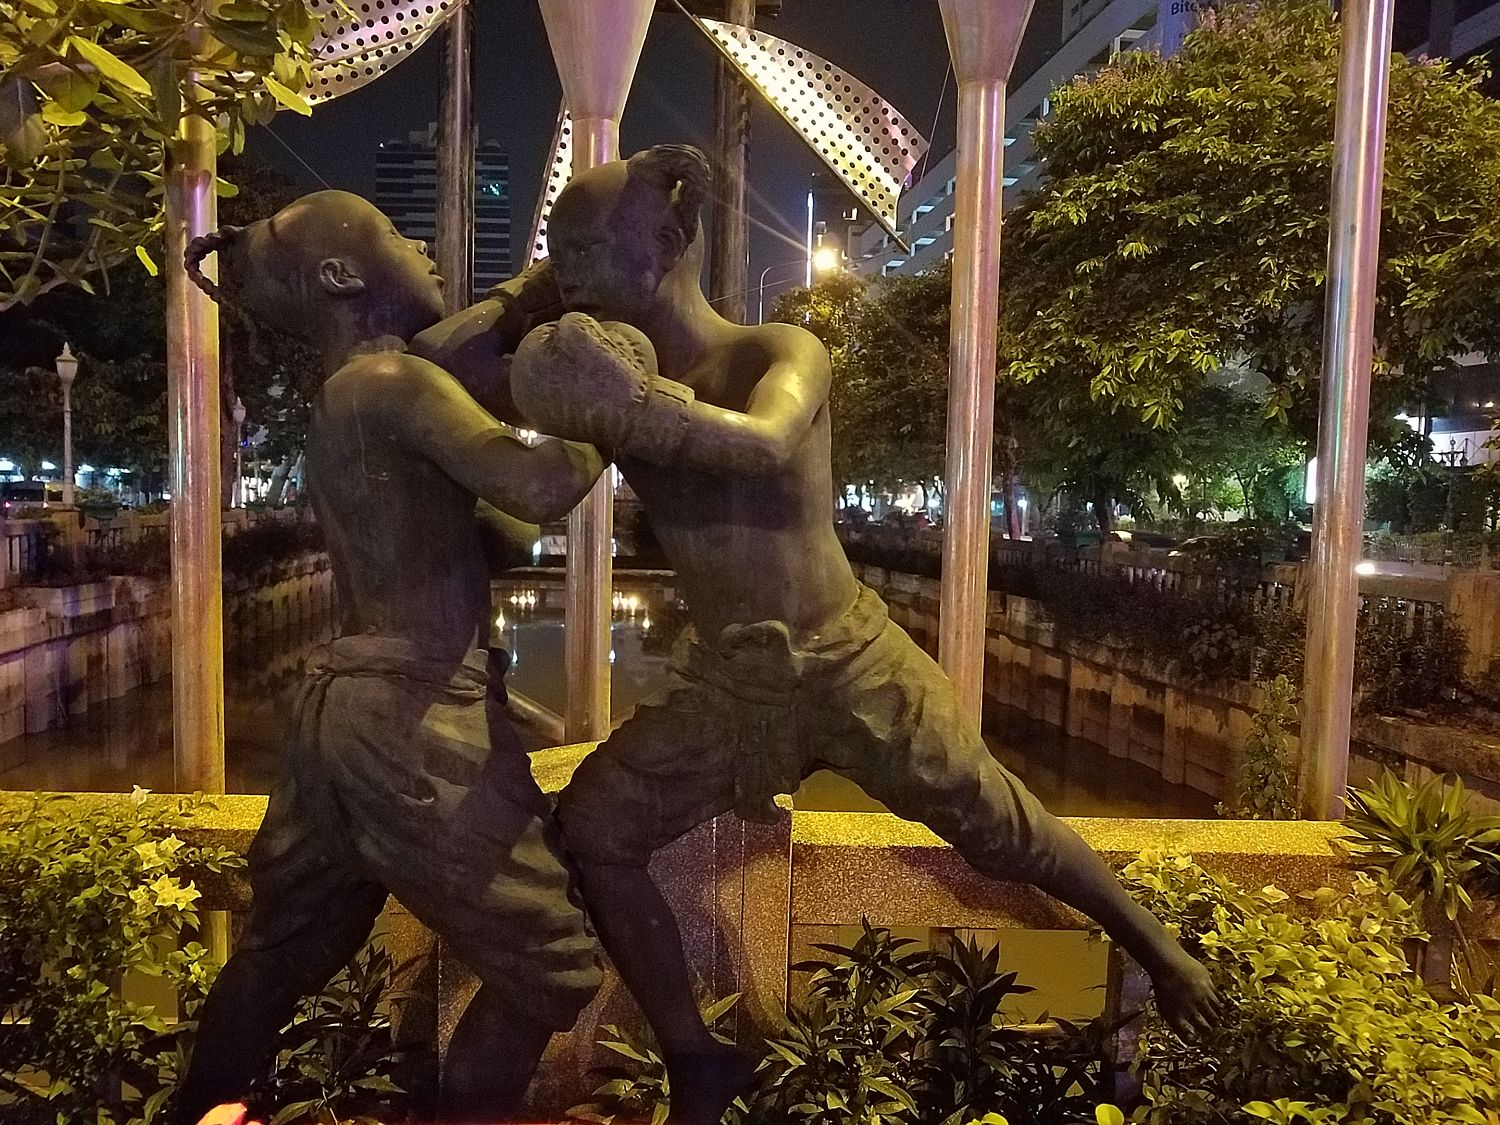 Thai boxing is a national sport and martial art